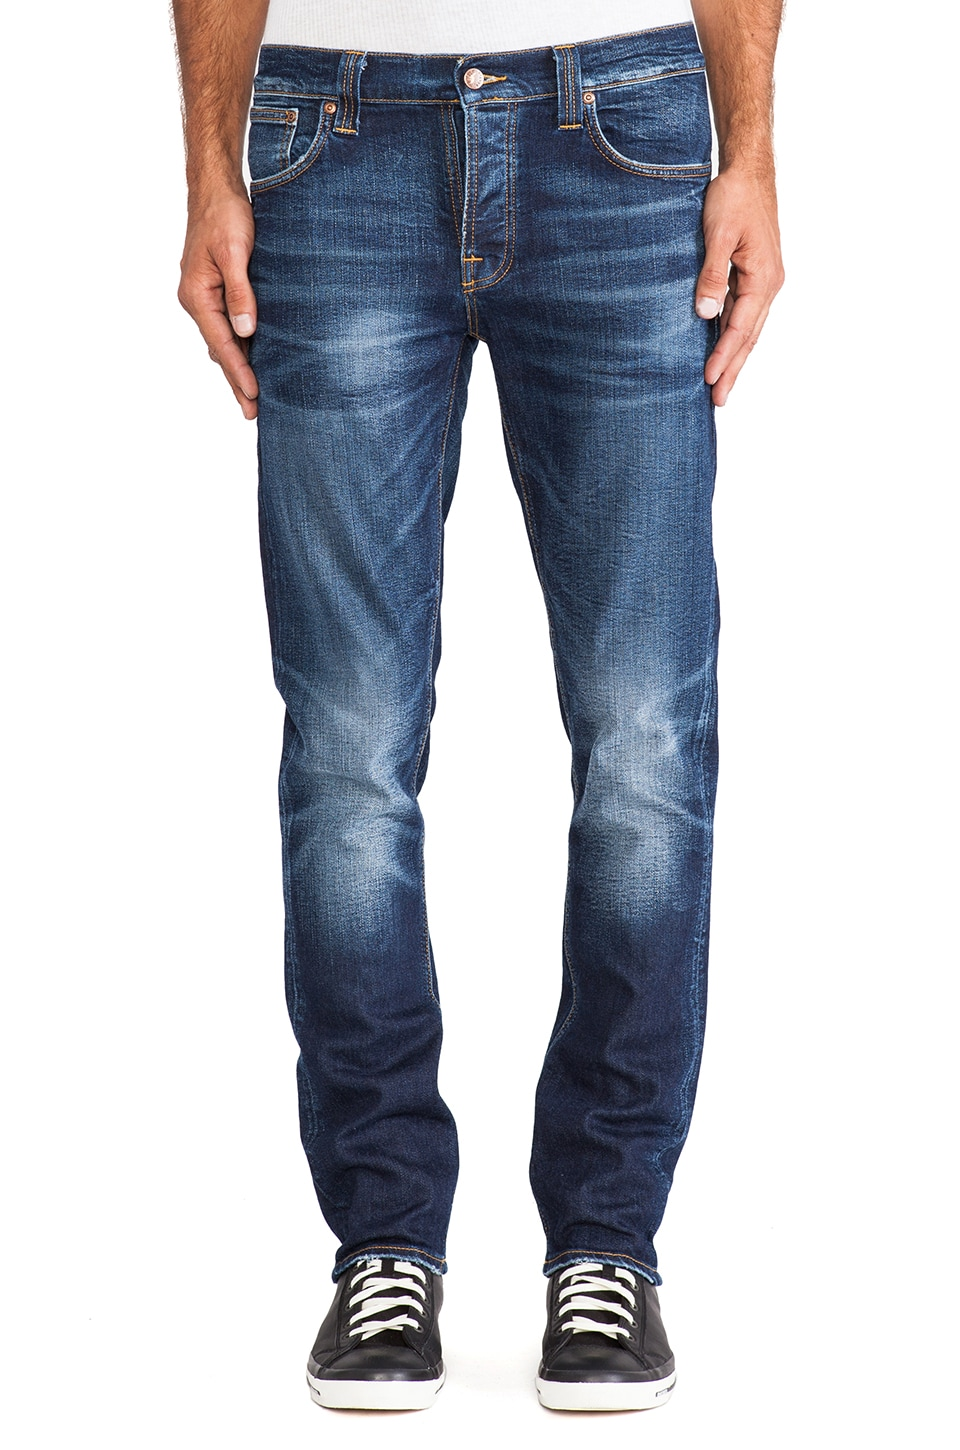 Nudie Jeans Grim Tim in Cold Crisp